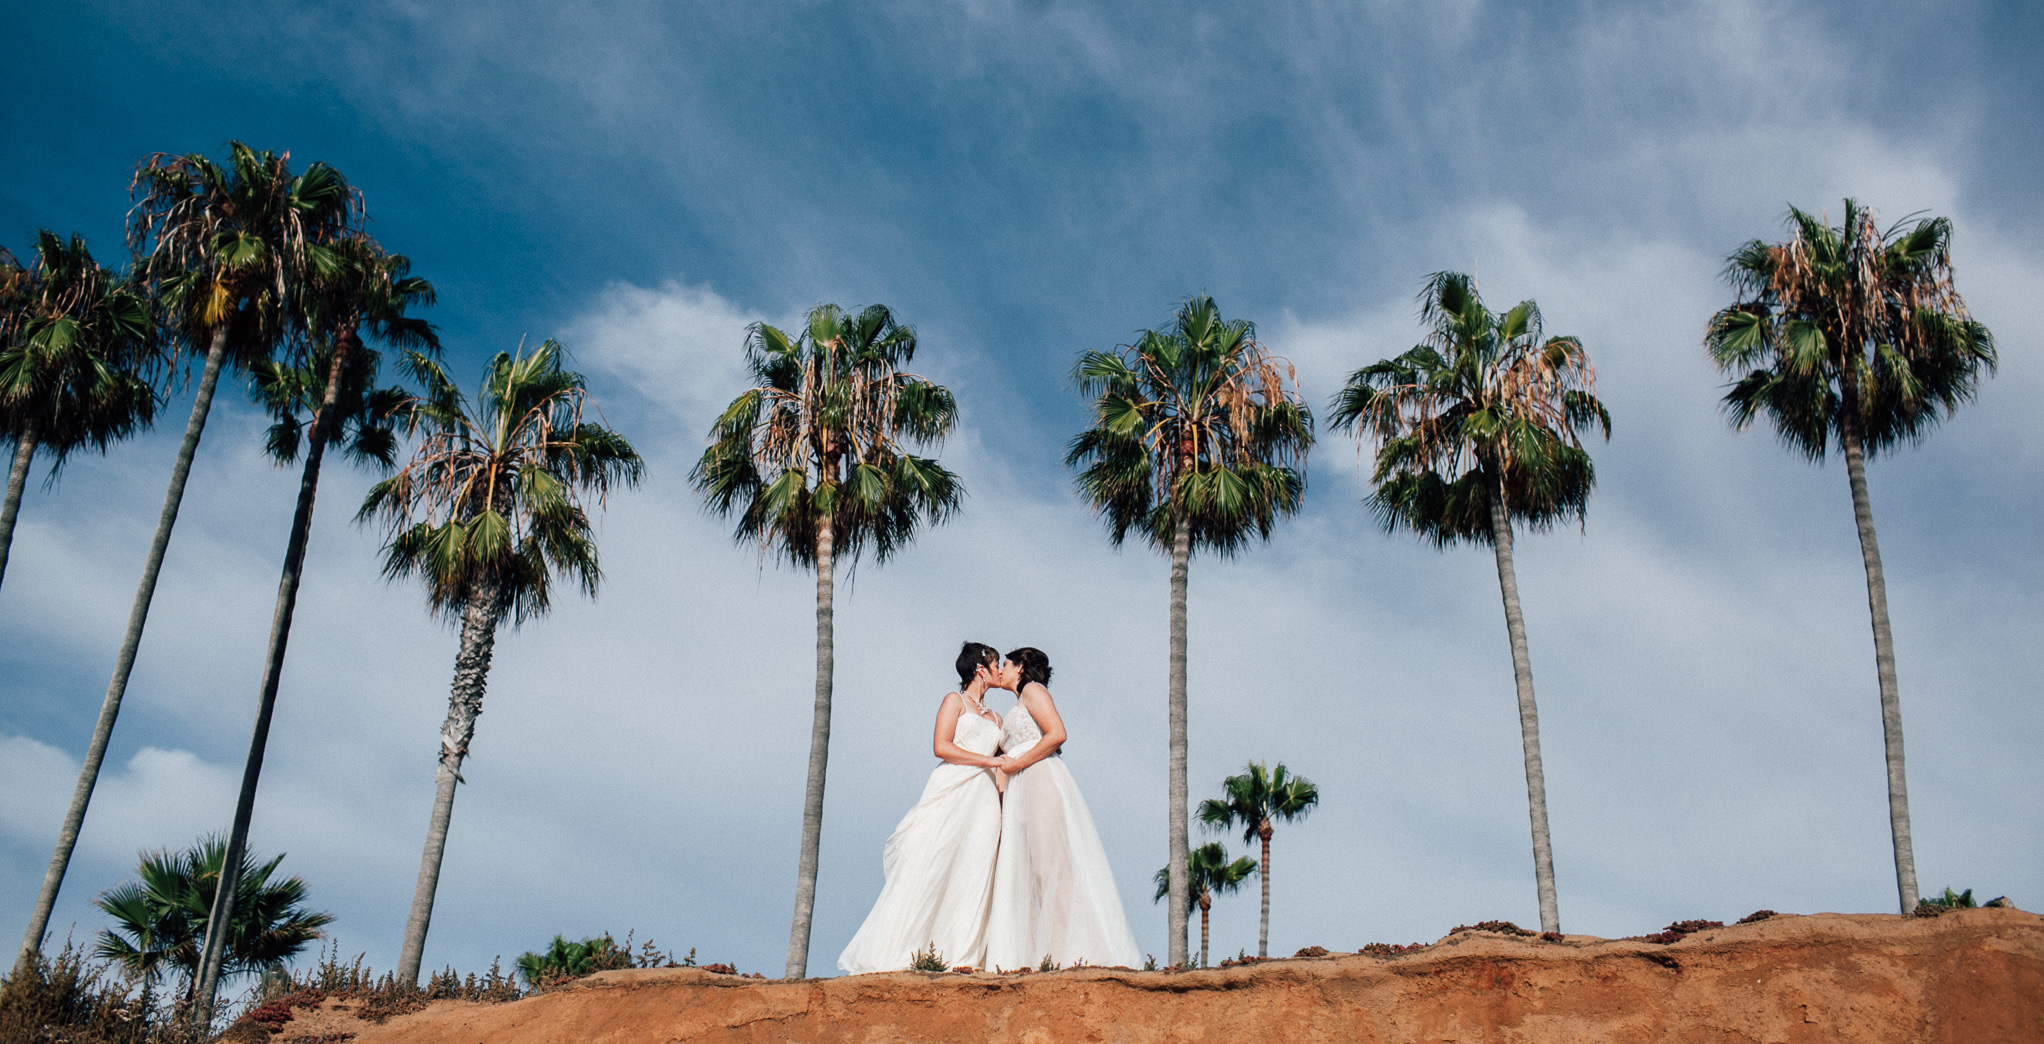 Two Brides in San Diego